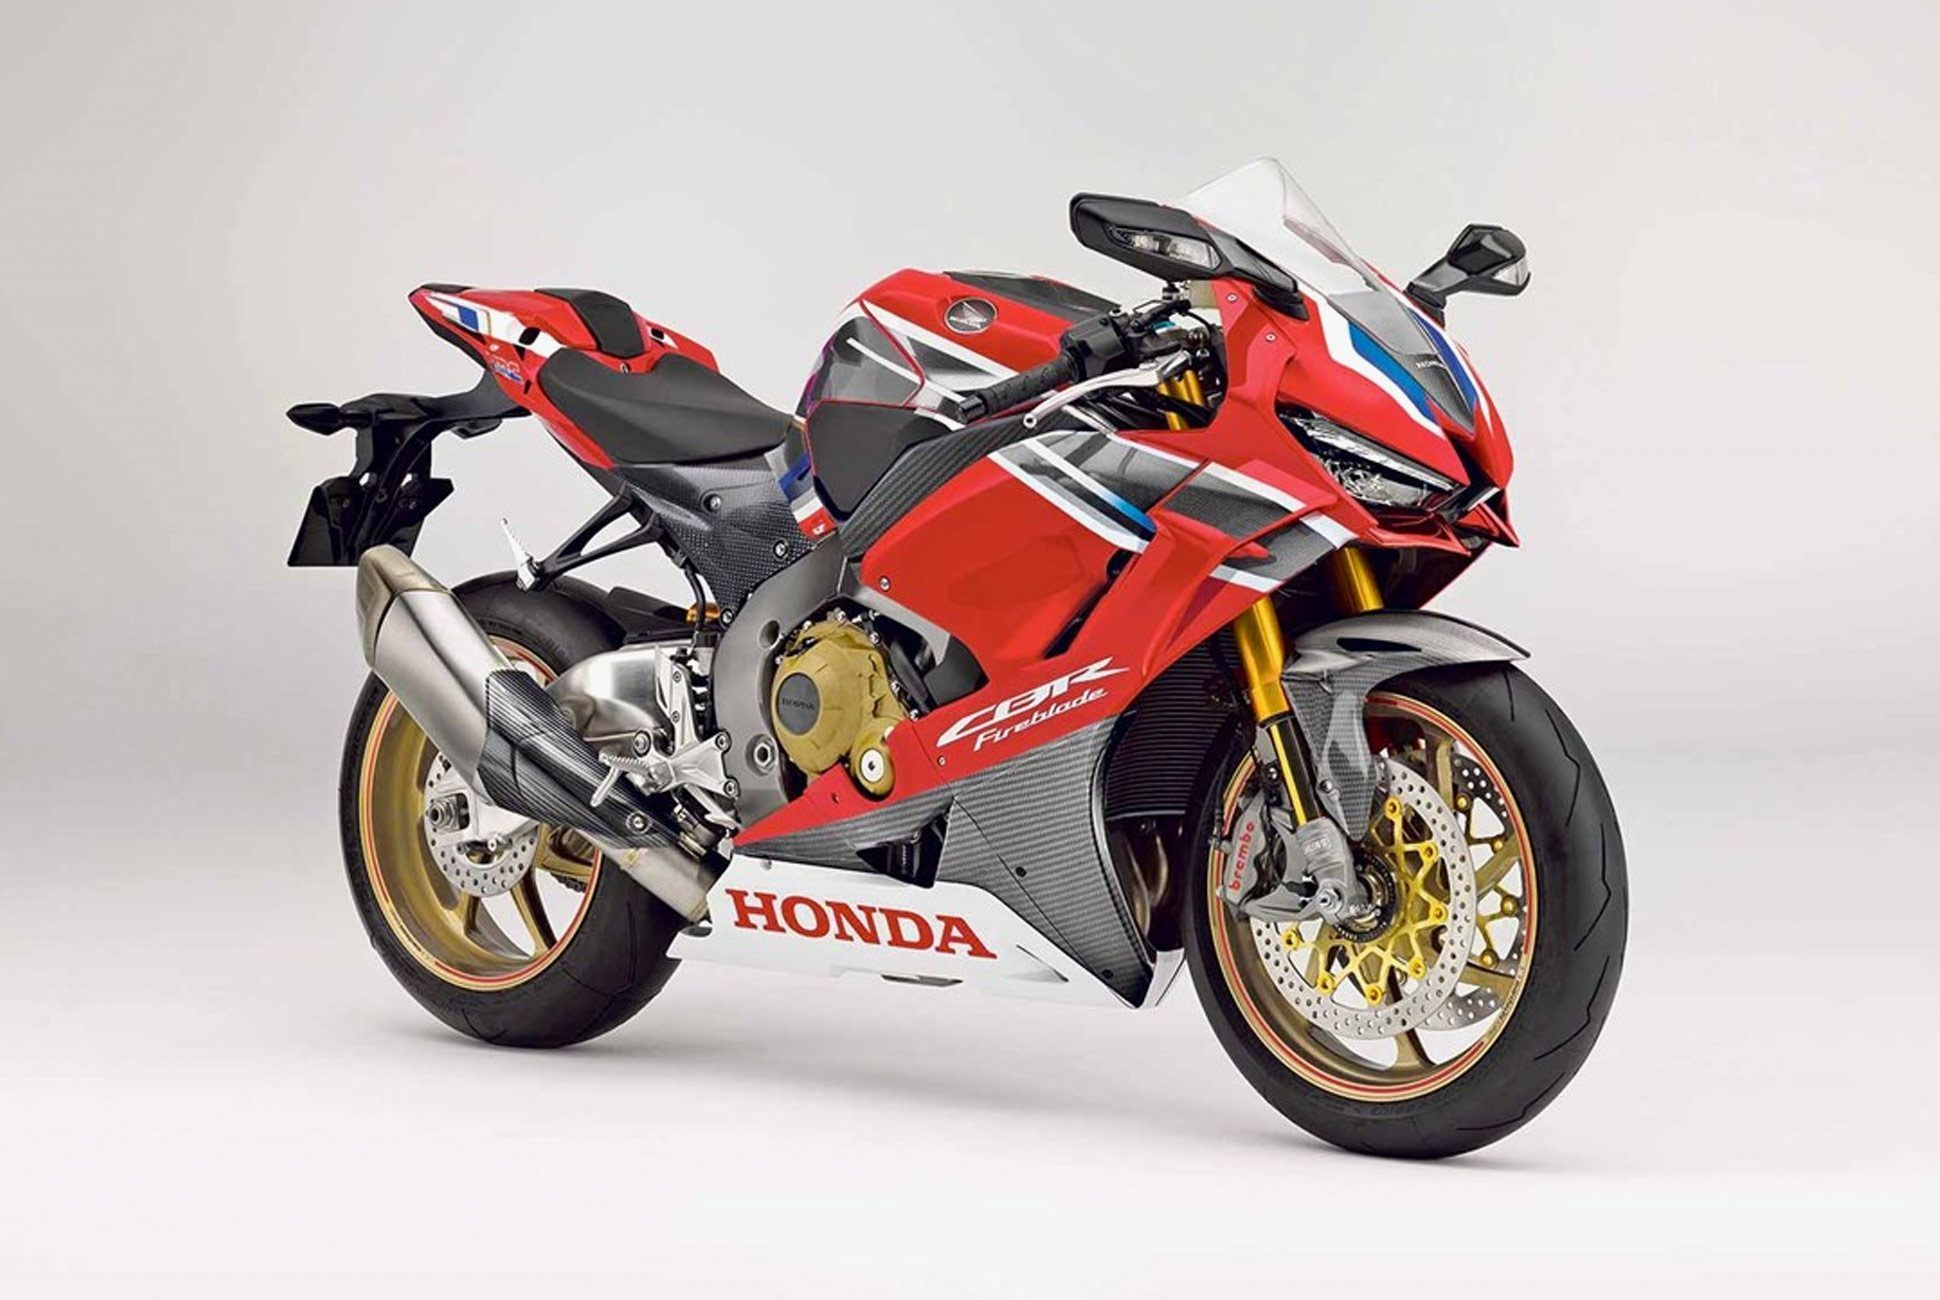 New 2019 Honda Cbr1000Rr Picture, Release date, and Review